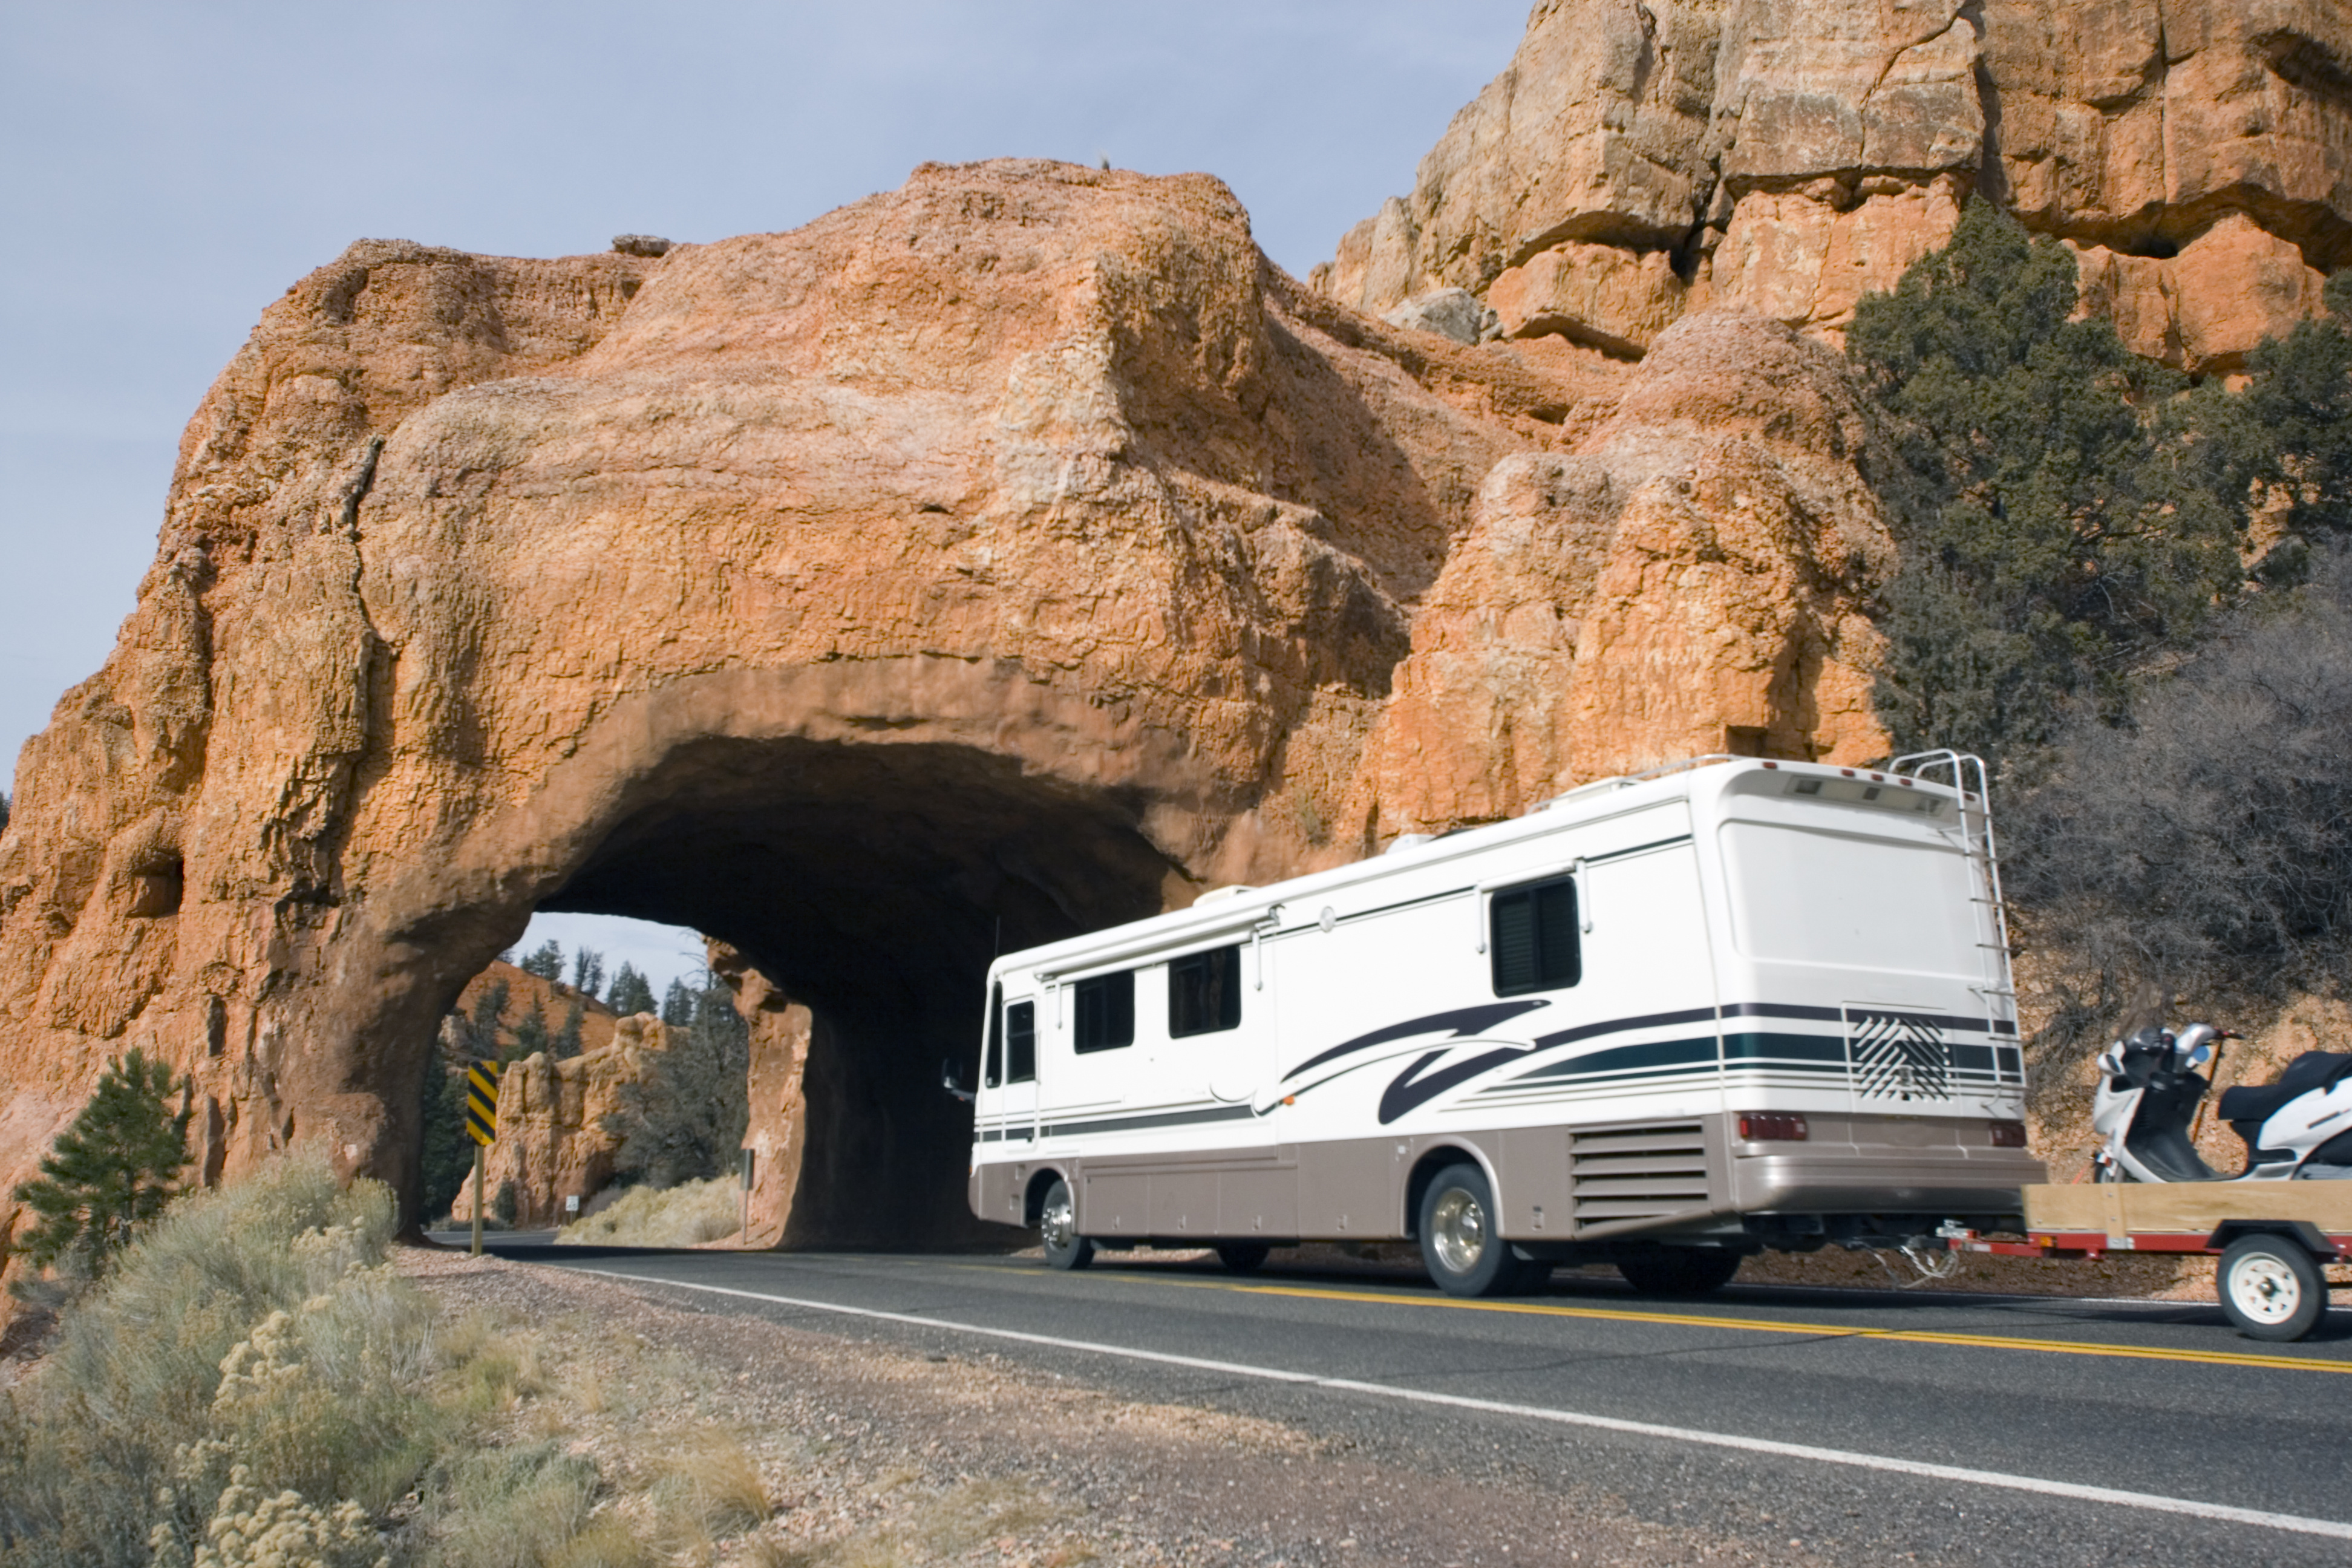 Explore the country without leaving the comforts of home.